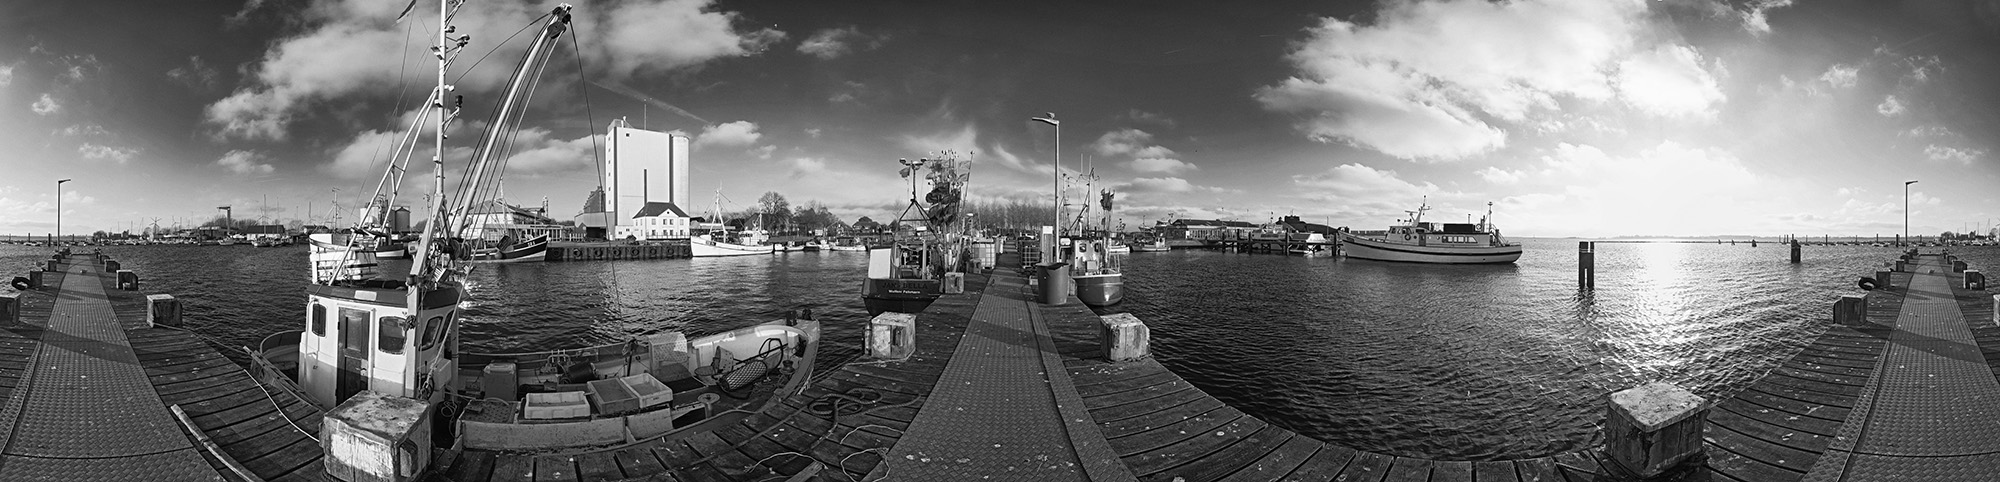 20141126-152251-PANORAMA-AUS-PS-CC-SILVEREFEX